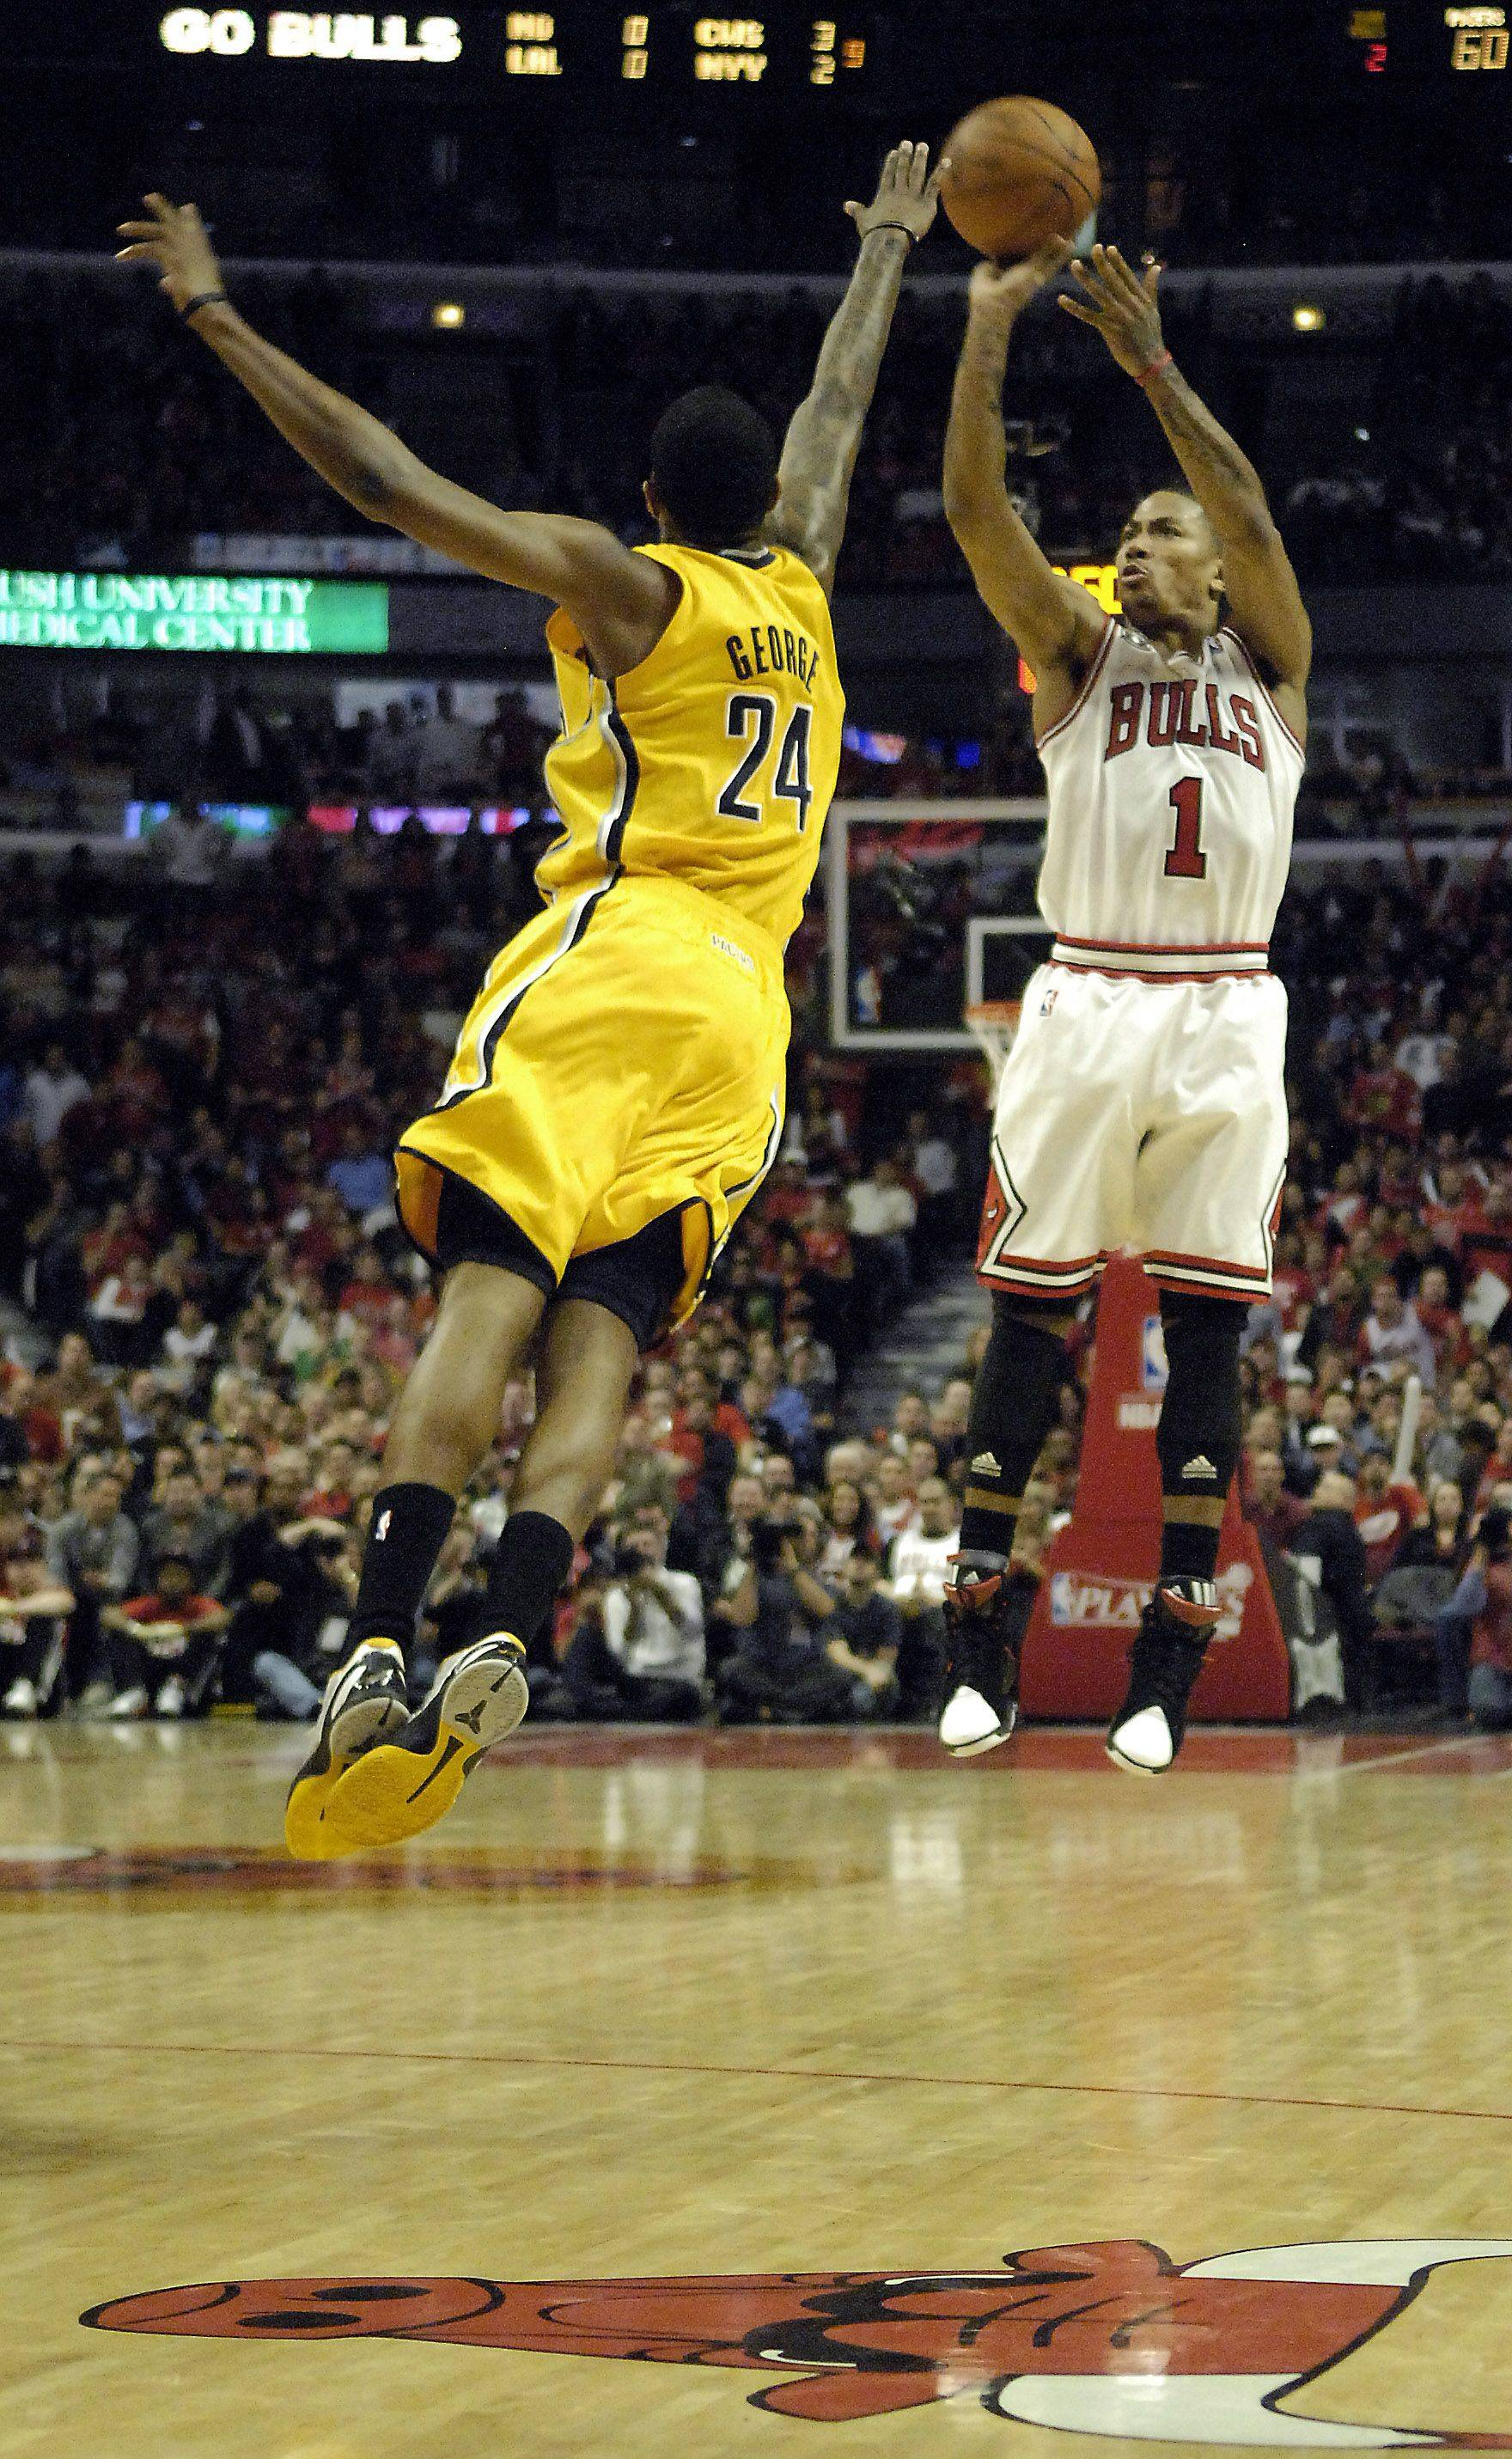 Chicago Bulls point guard Derrick Rose drains a three-pointer over Indiana Pacers small forward Paul George during game 5 of the NBA Eastern Conference quarterfinals in Chicago Tuesday.